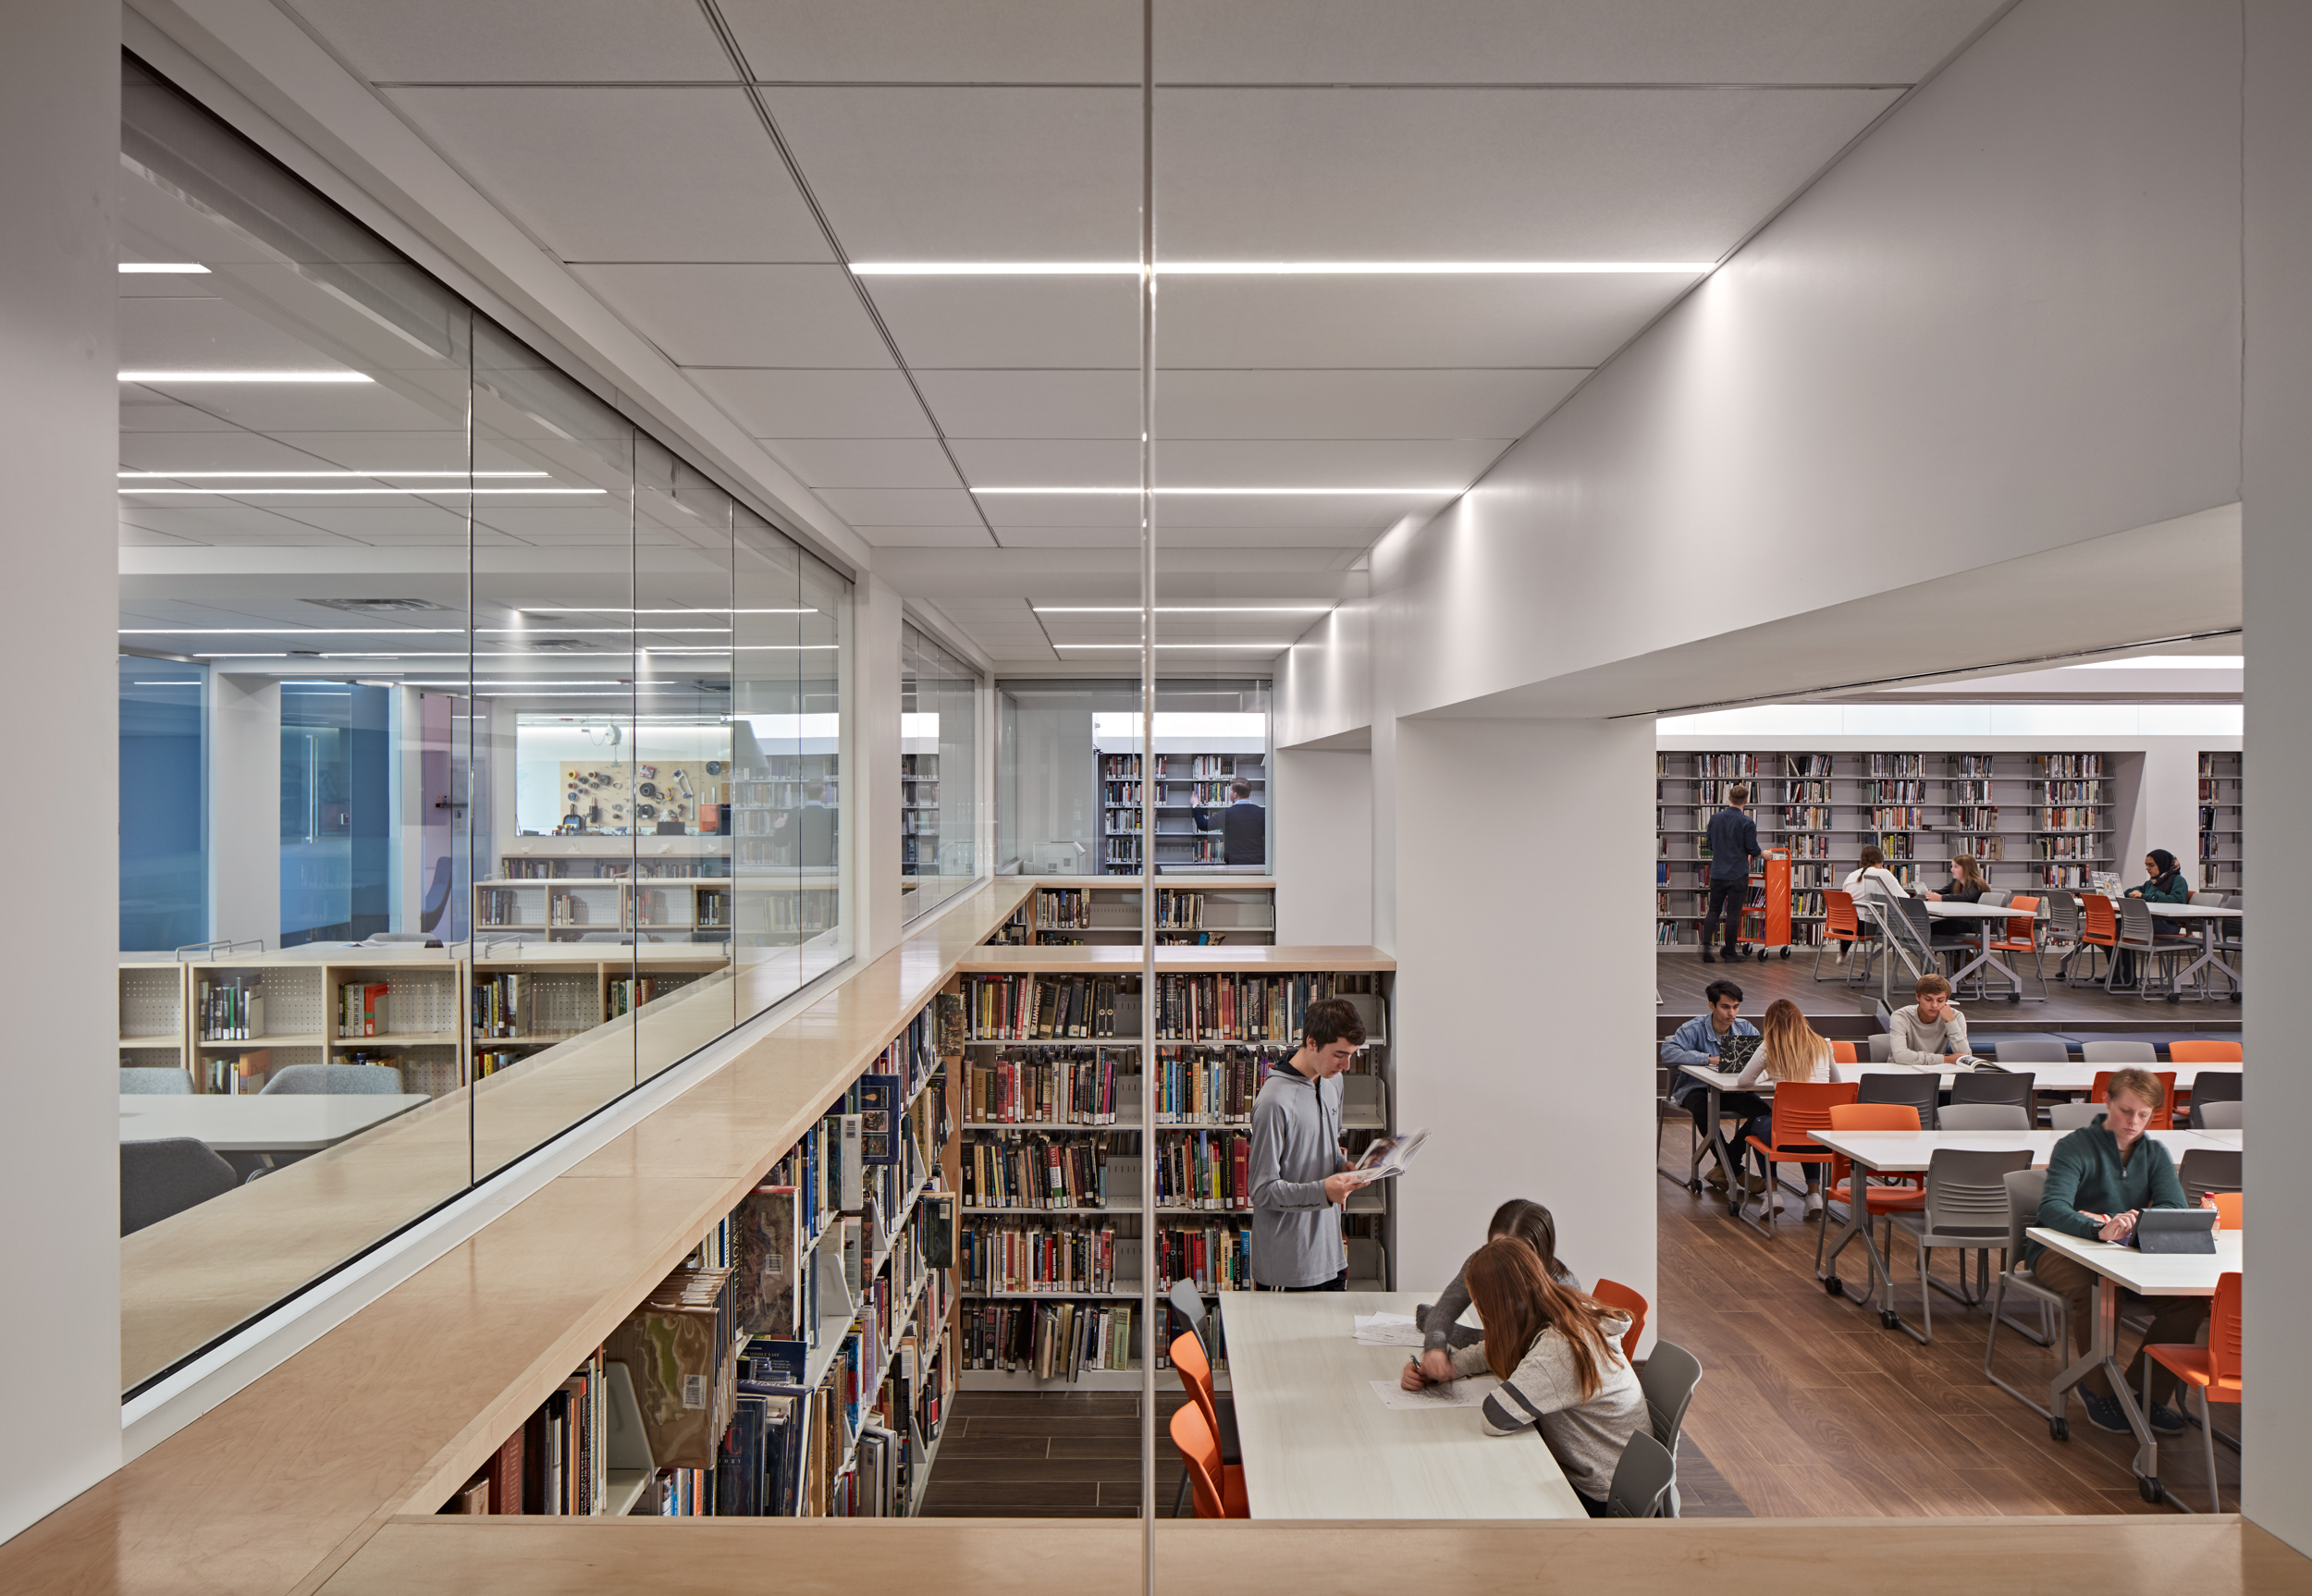 View of Library at the Latin School of Chicago, Chicago, IL (Photo by Tom Harris)